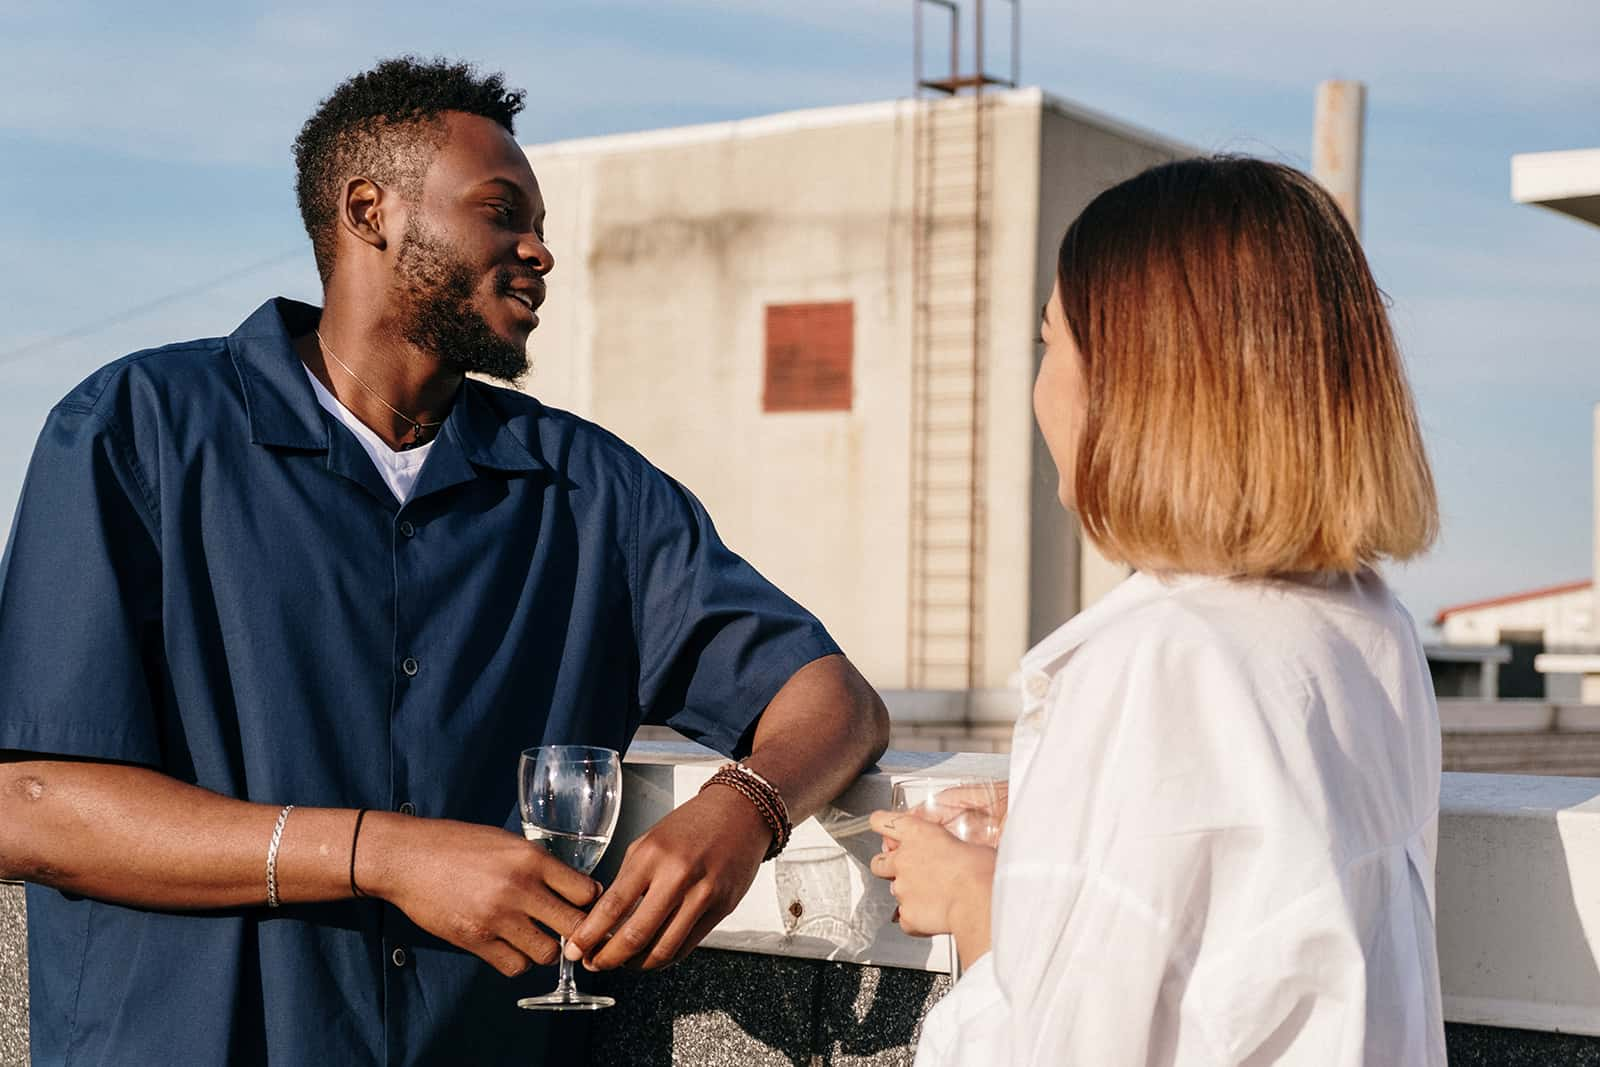 man and woman talking while drinking wine on rooftop